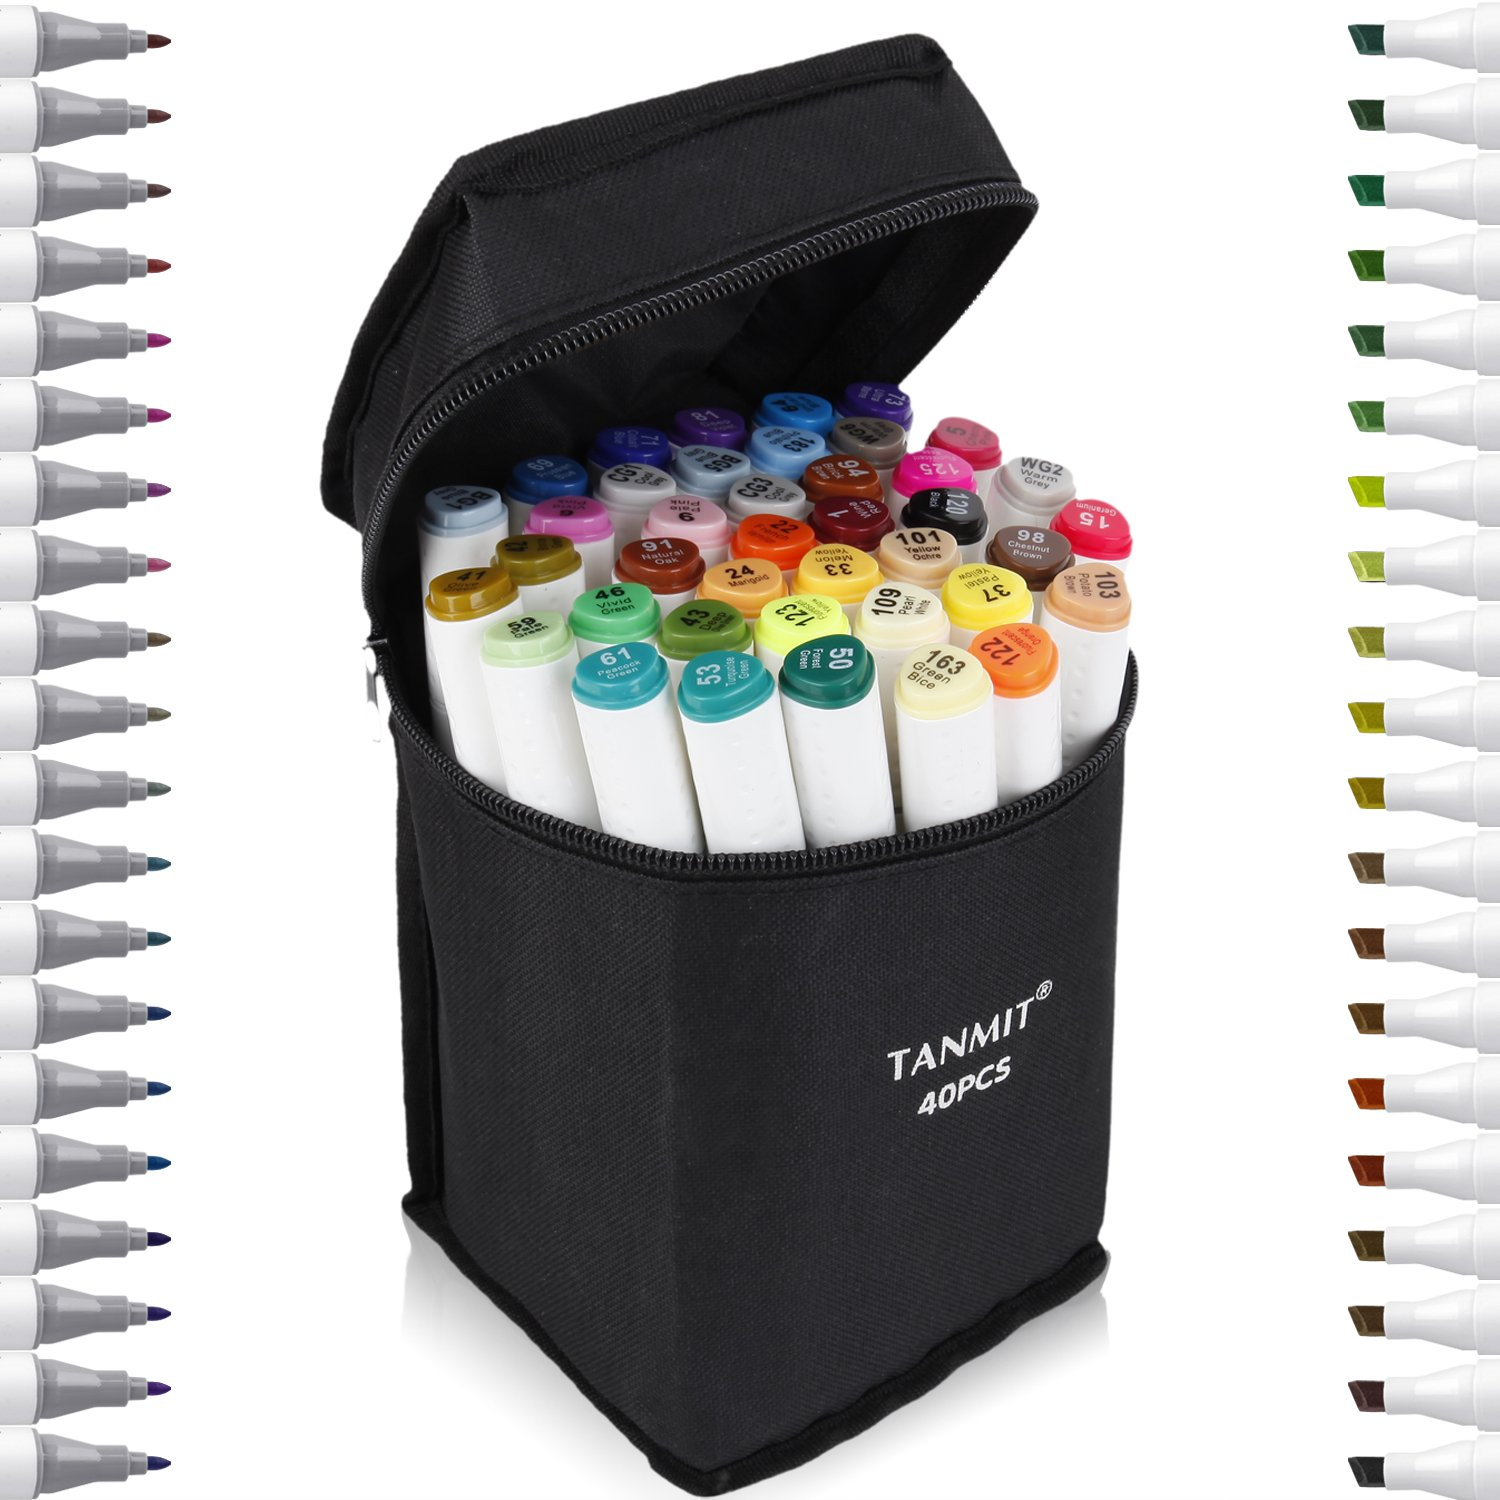 Tanmit 40 Color Dual Tips Art Markers, Permanent Marker Highlighter Pens with Case for Adult Coloring Drawing Sketching Highlighting and Underlining